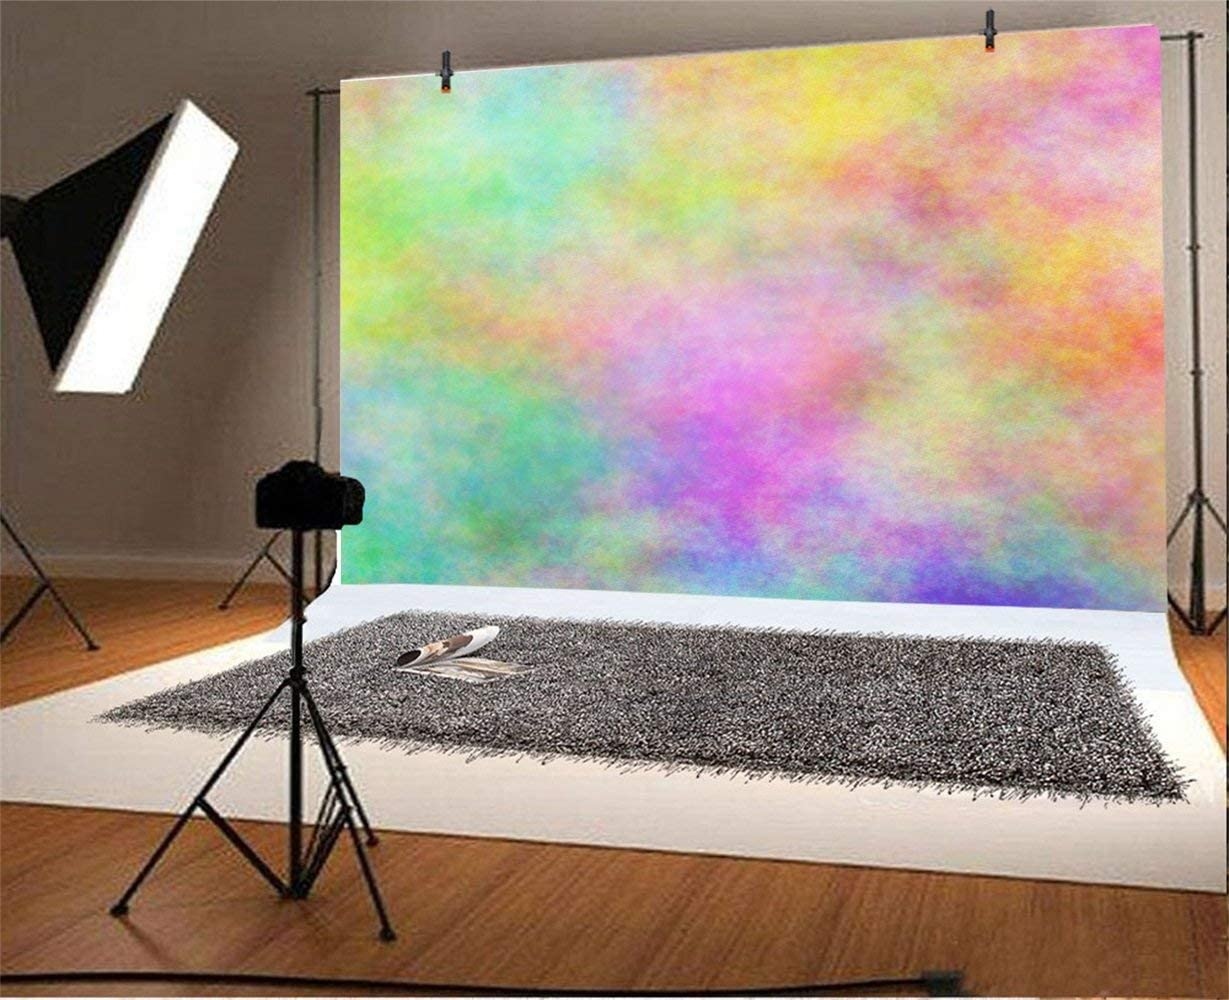 Abstract Blurry Colorful Wall Backdrop 9x6ft Polyester Dreamy World Imaginary Abstractionism Watercolor Painting Photography Background Baby Birthday Artistic Portrait Party Banner Cake Smash